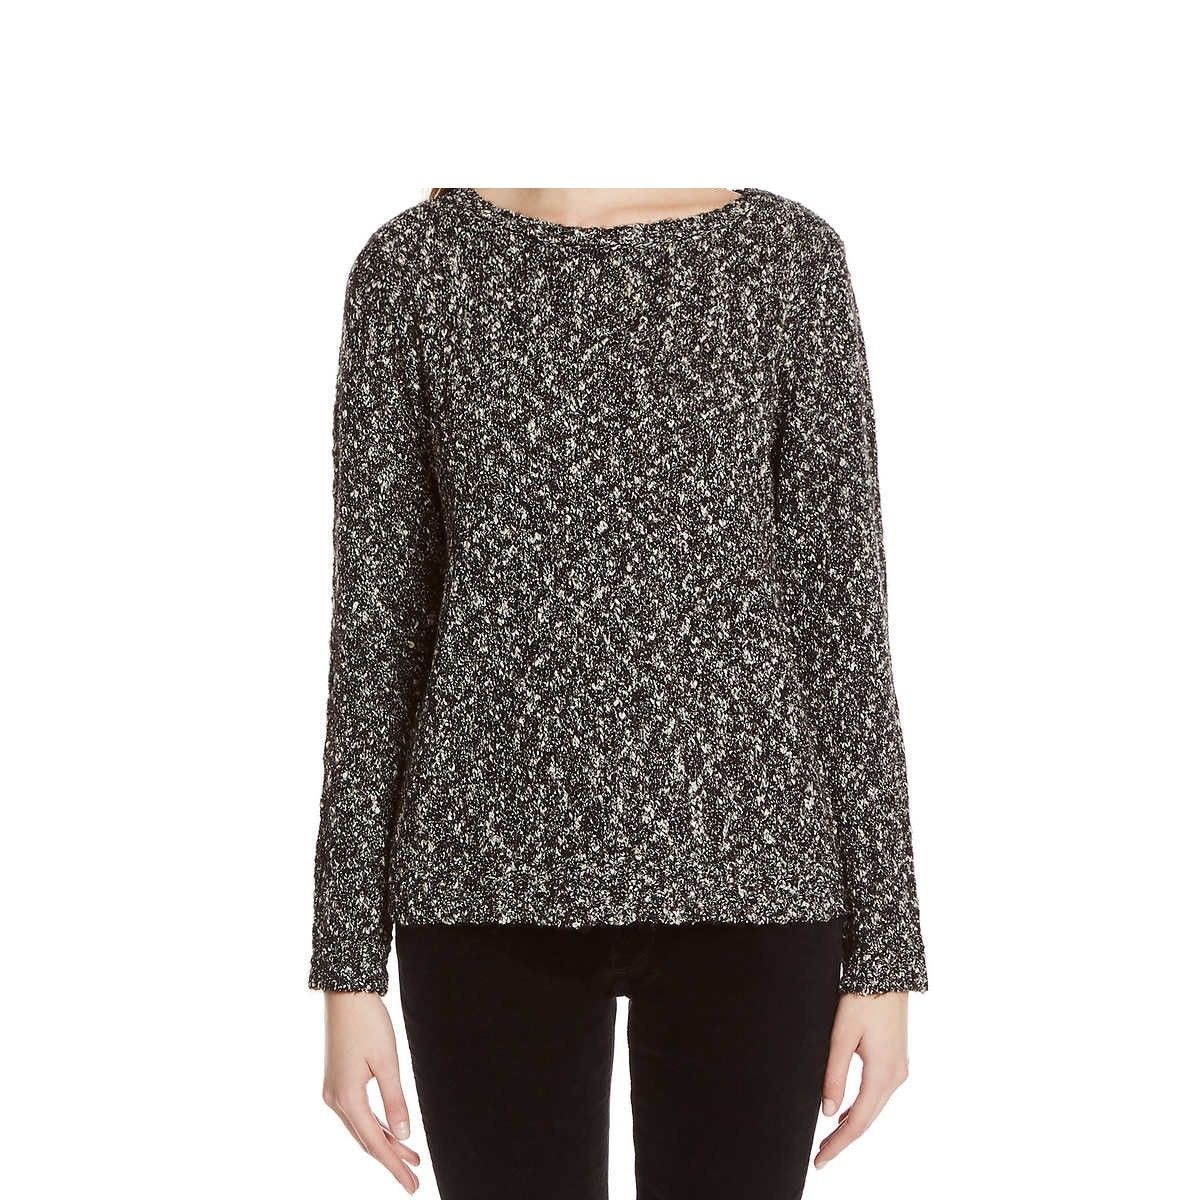 Primary image for Buffalo David Bitton Womens Textured Mixed Yarn Sweater, Black, Size XS